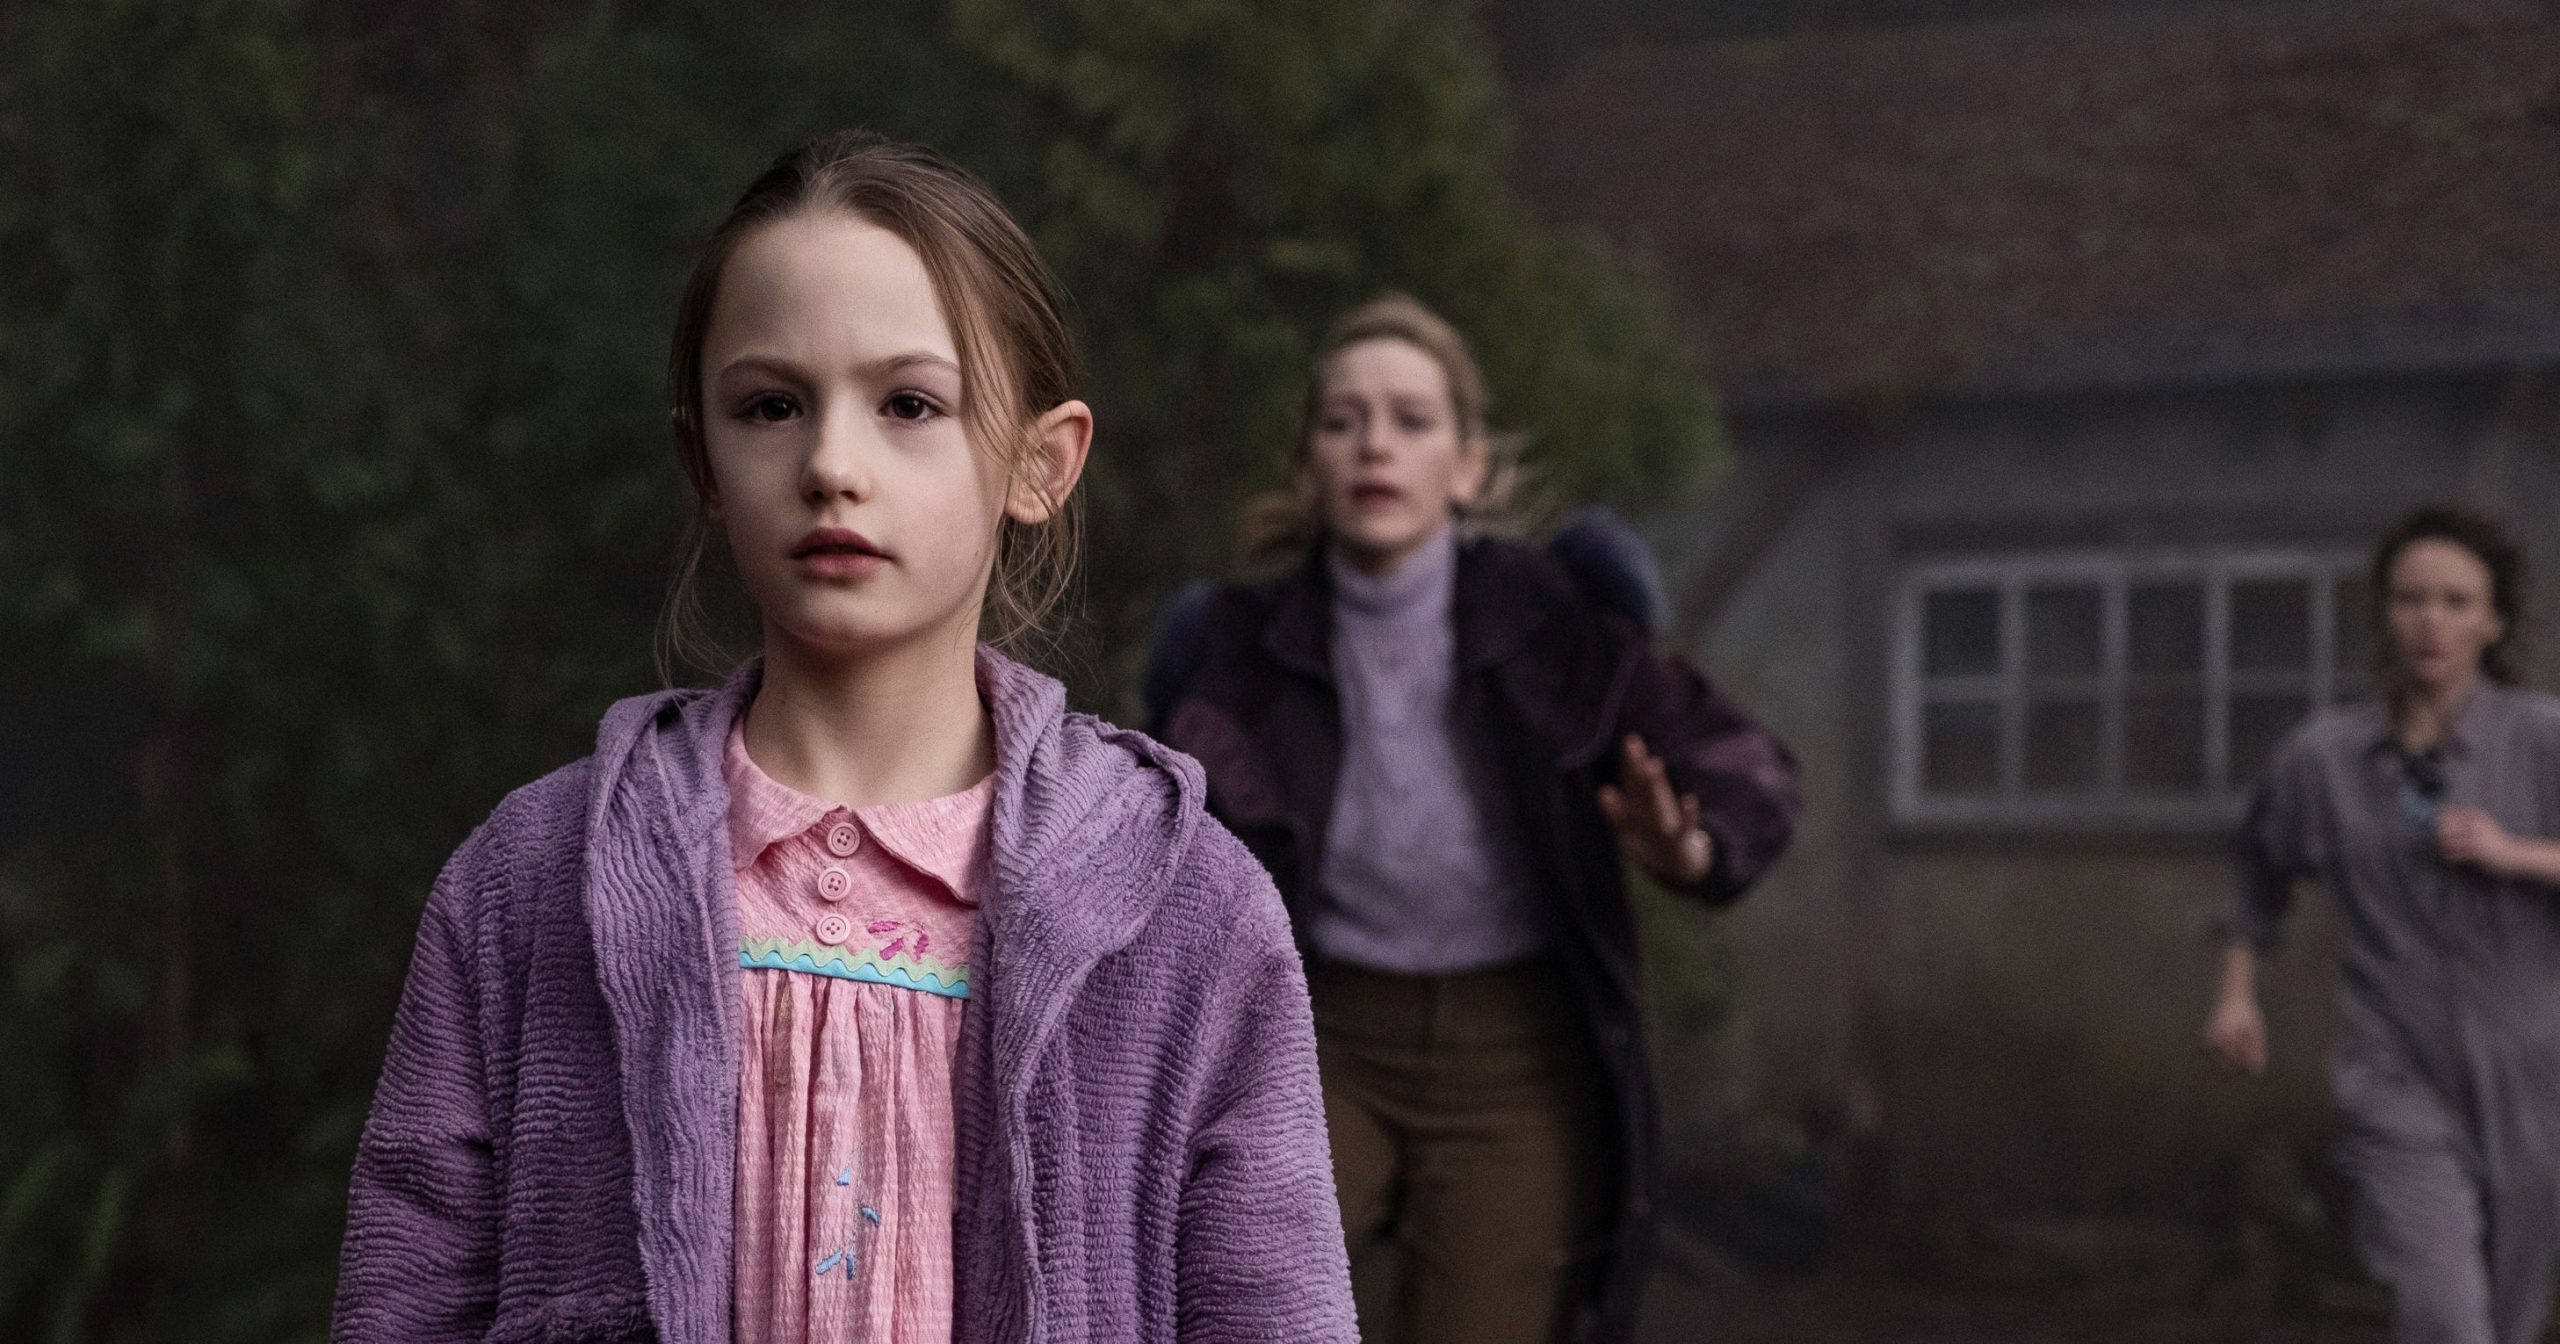 ¿Dónde se filma The Haunting of Bly Manor? 1